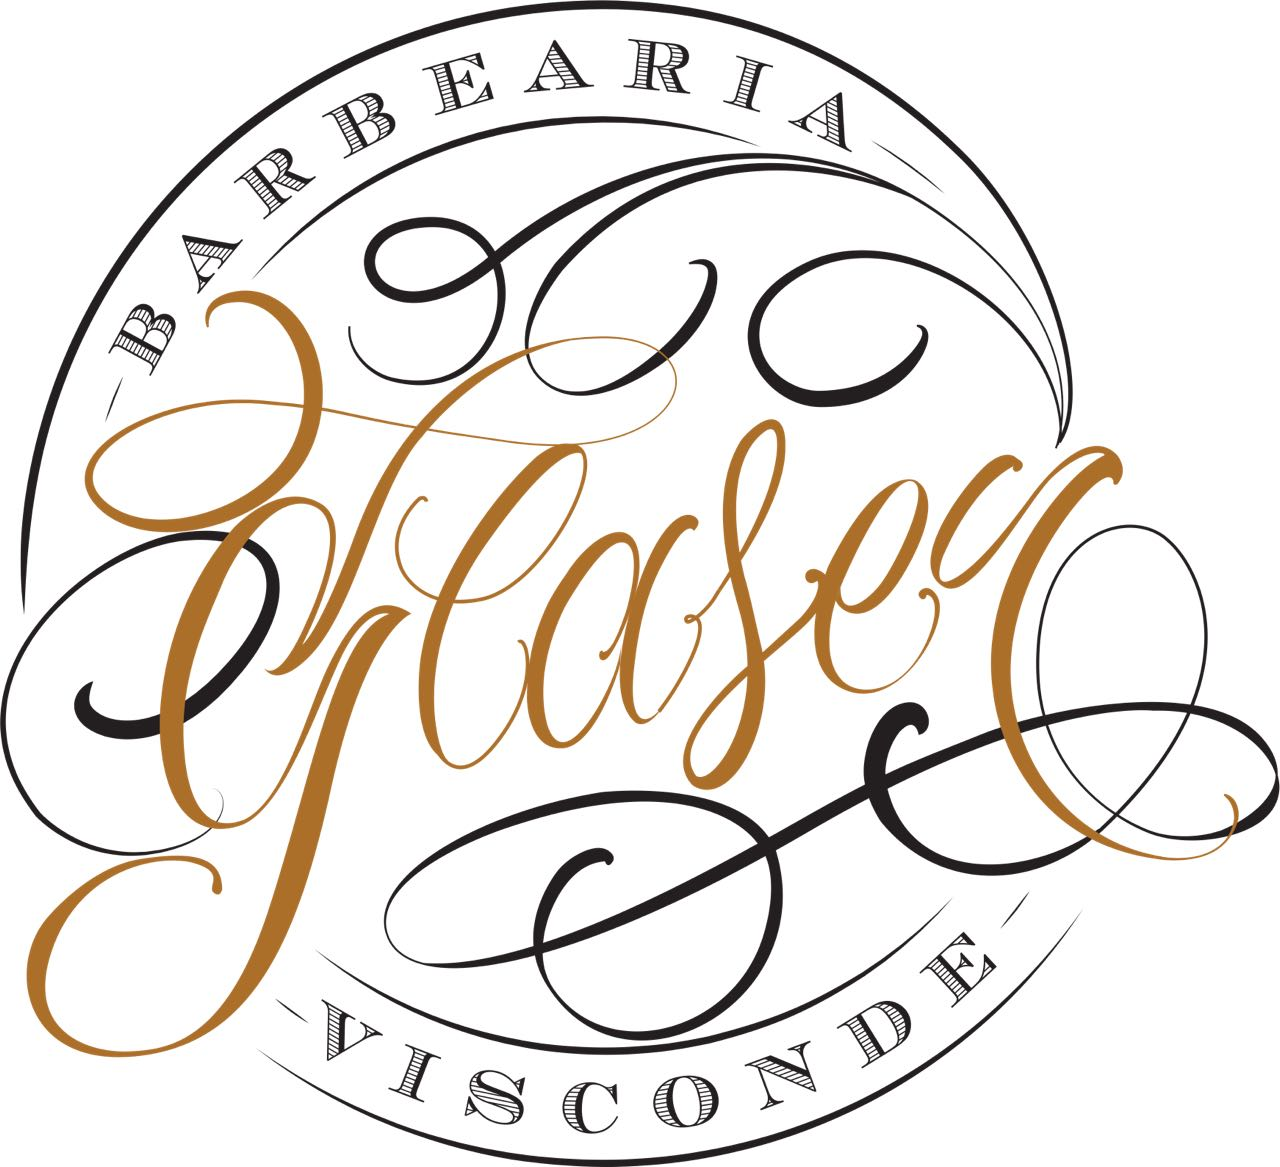 Barbearia Visconde Glaser